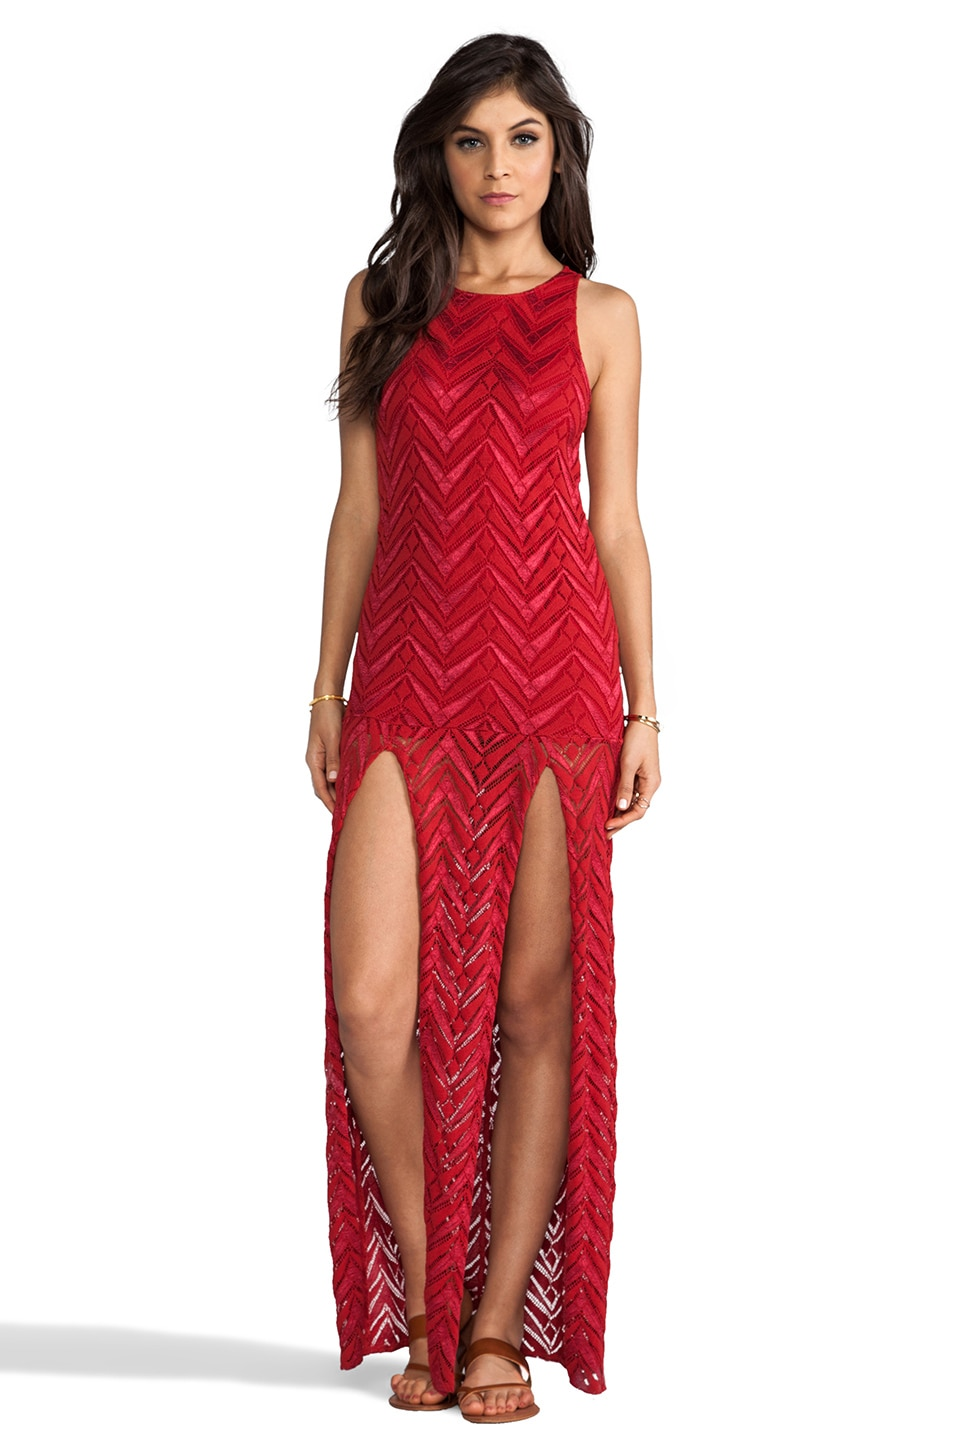 Jen's Pirate Booty Woodland Spirit Zig Zag Lace Slit Dress in Red